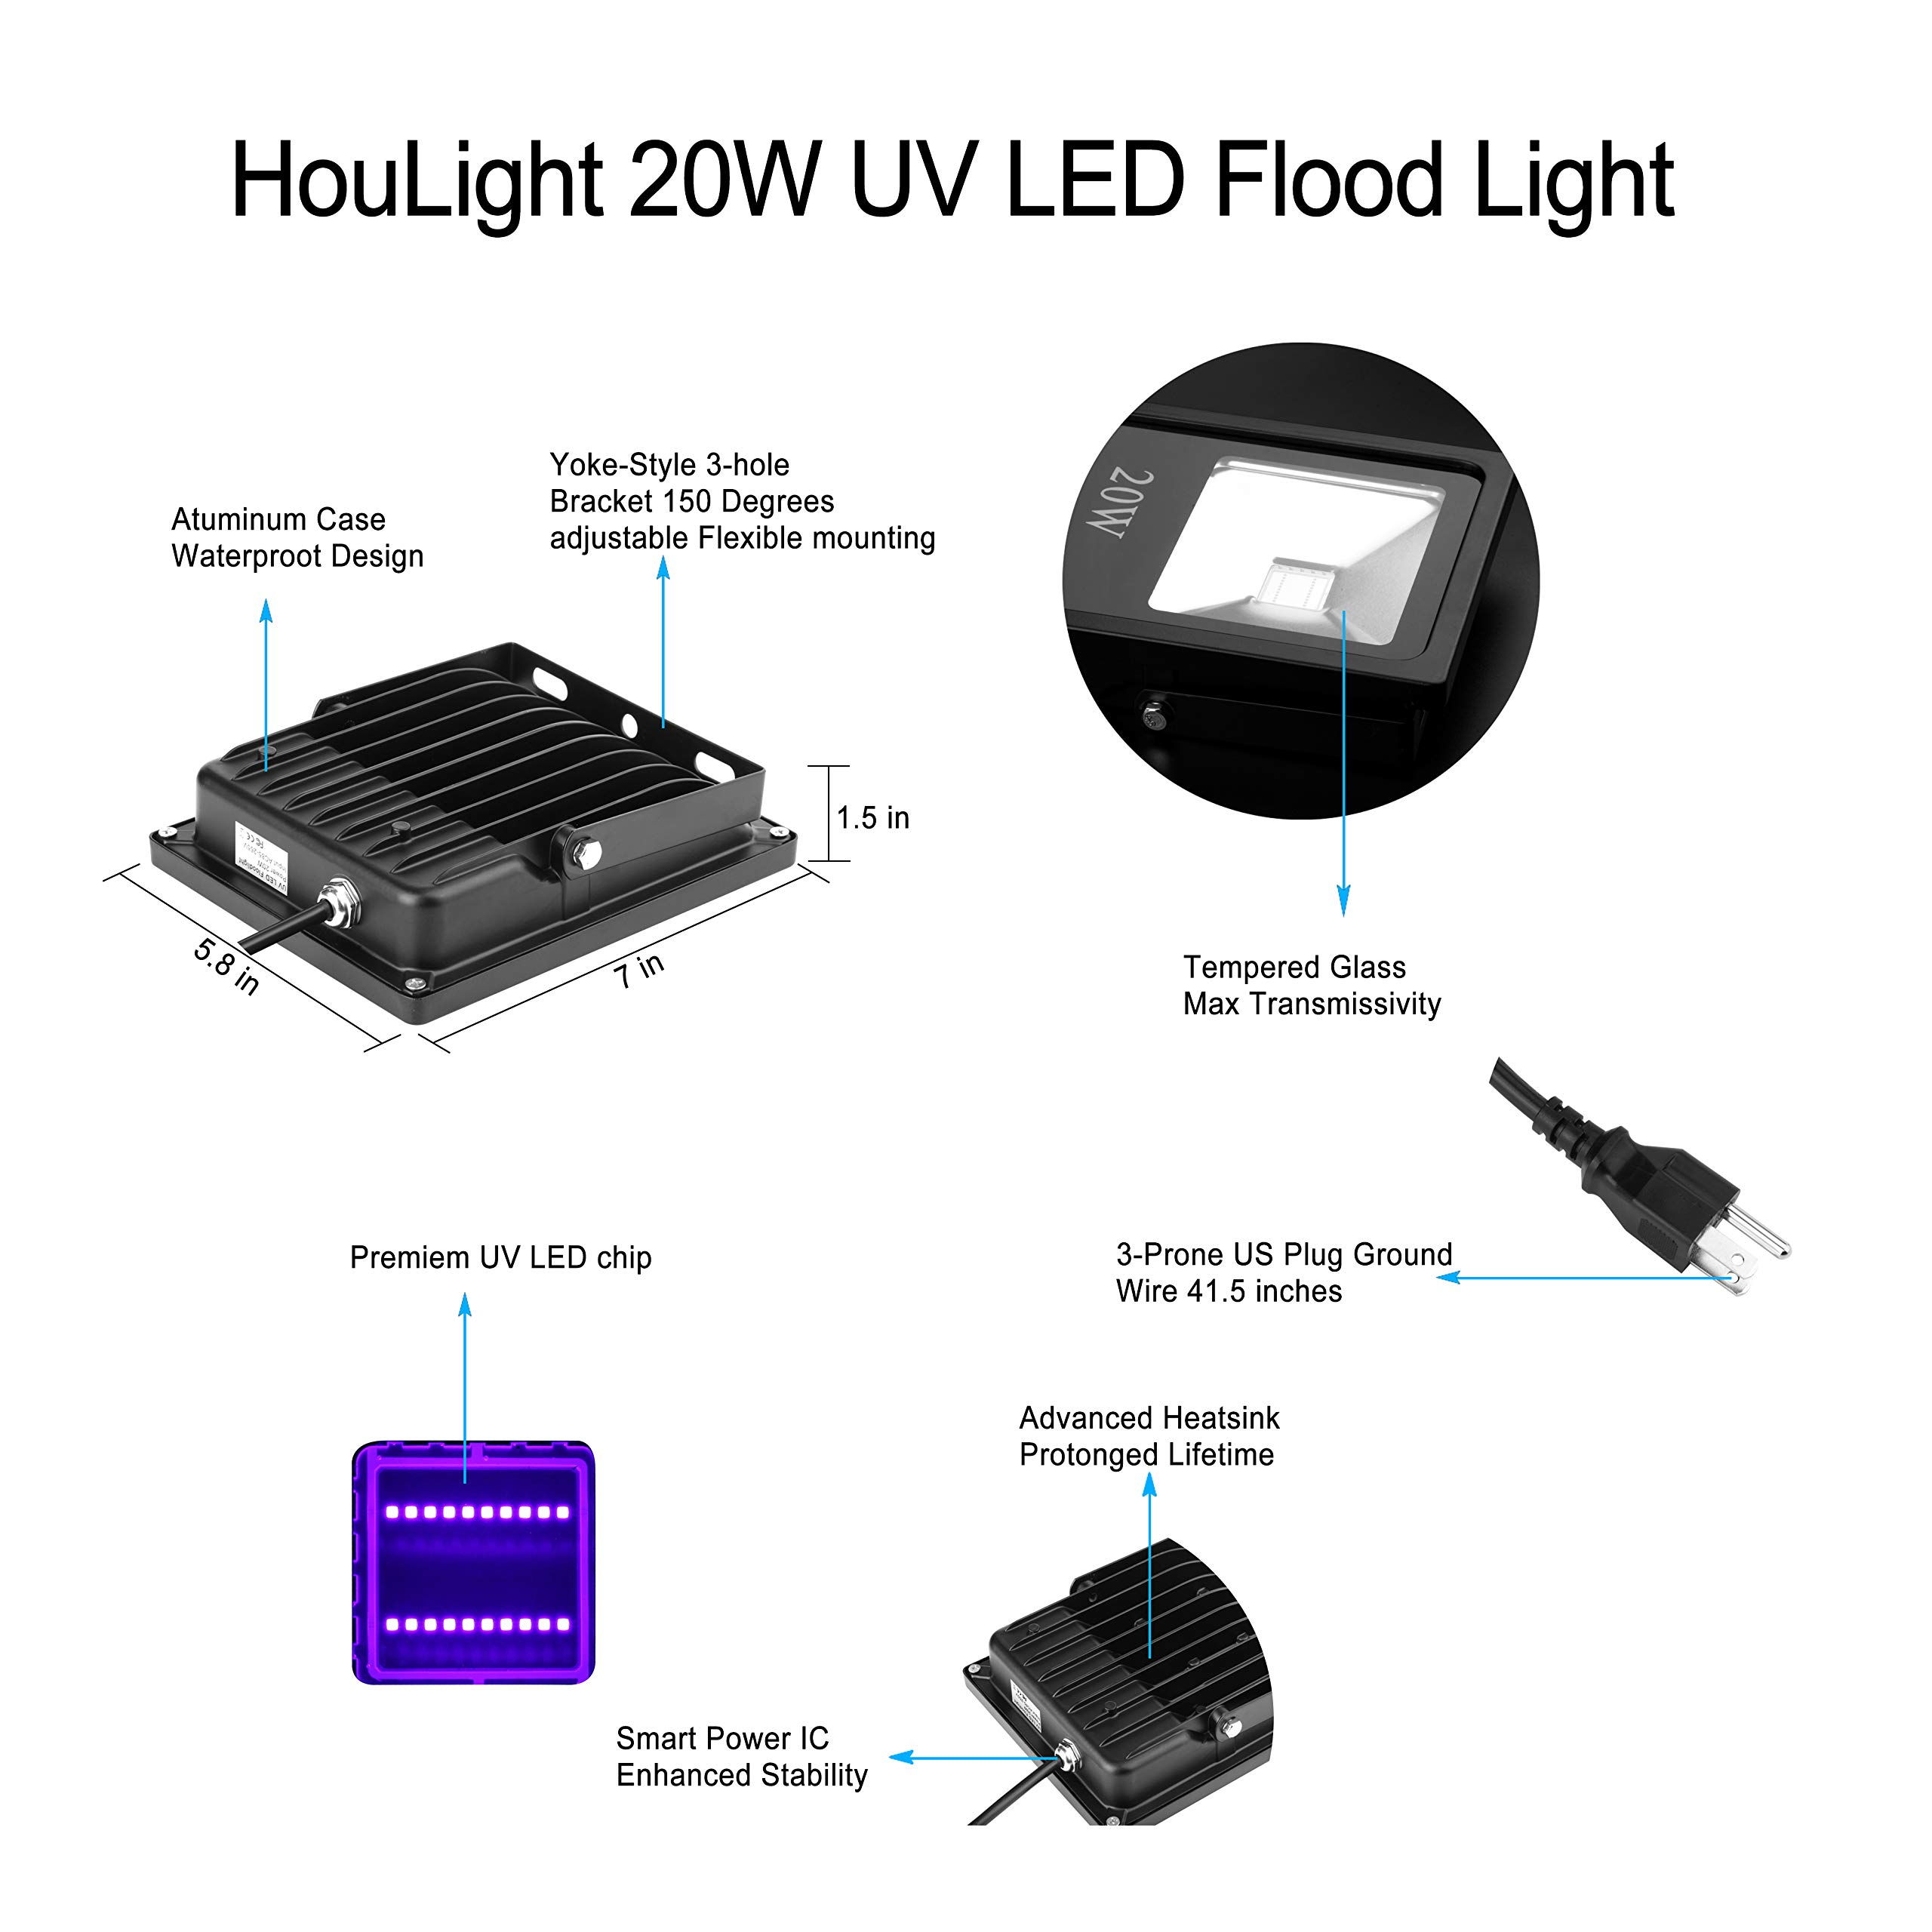 UV LED Black Light, HouLight High Power 10W Ultra Violet UV LED Flood Light IP65-Waterproof (85V-265V AC) for Blacklight Party Supplies, Neon Glow, Glow in The Dark, Fishing, Aquarium, Curing (20) by stalet (Image #5)